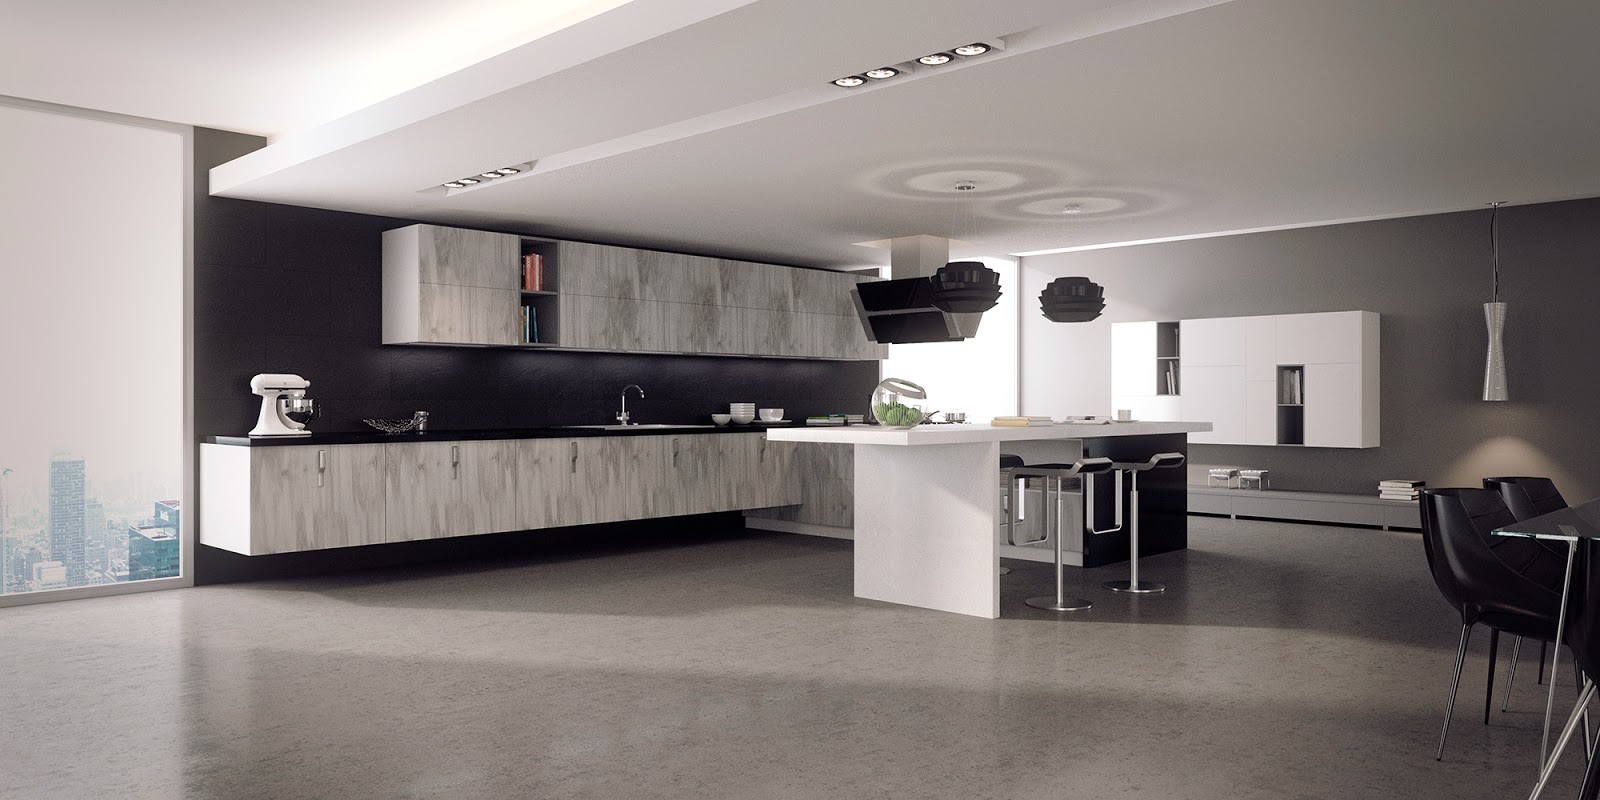 Jose vicente sanz march ambiente cocina con muebles en for Diseno cocinas 3d